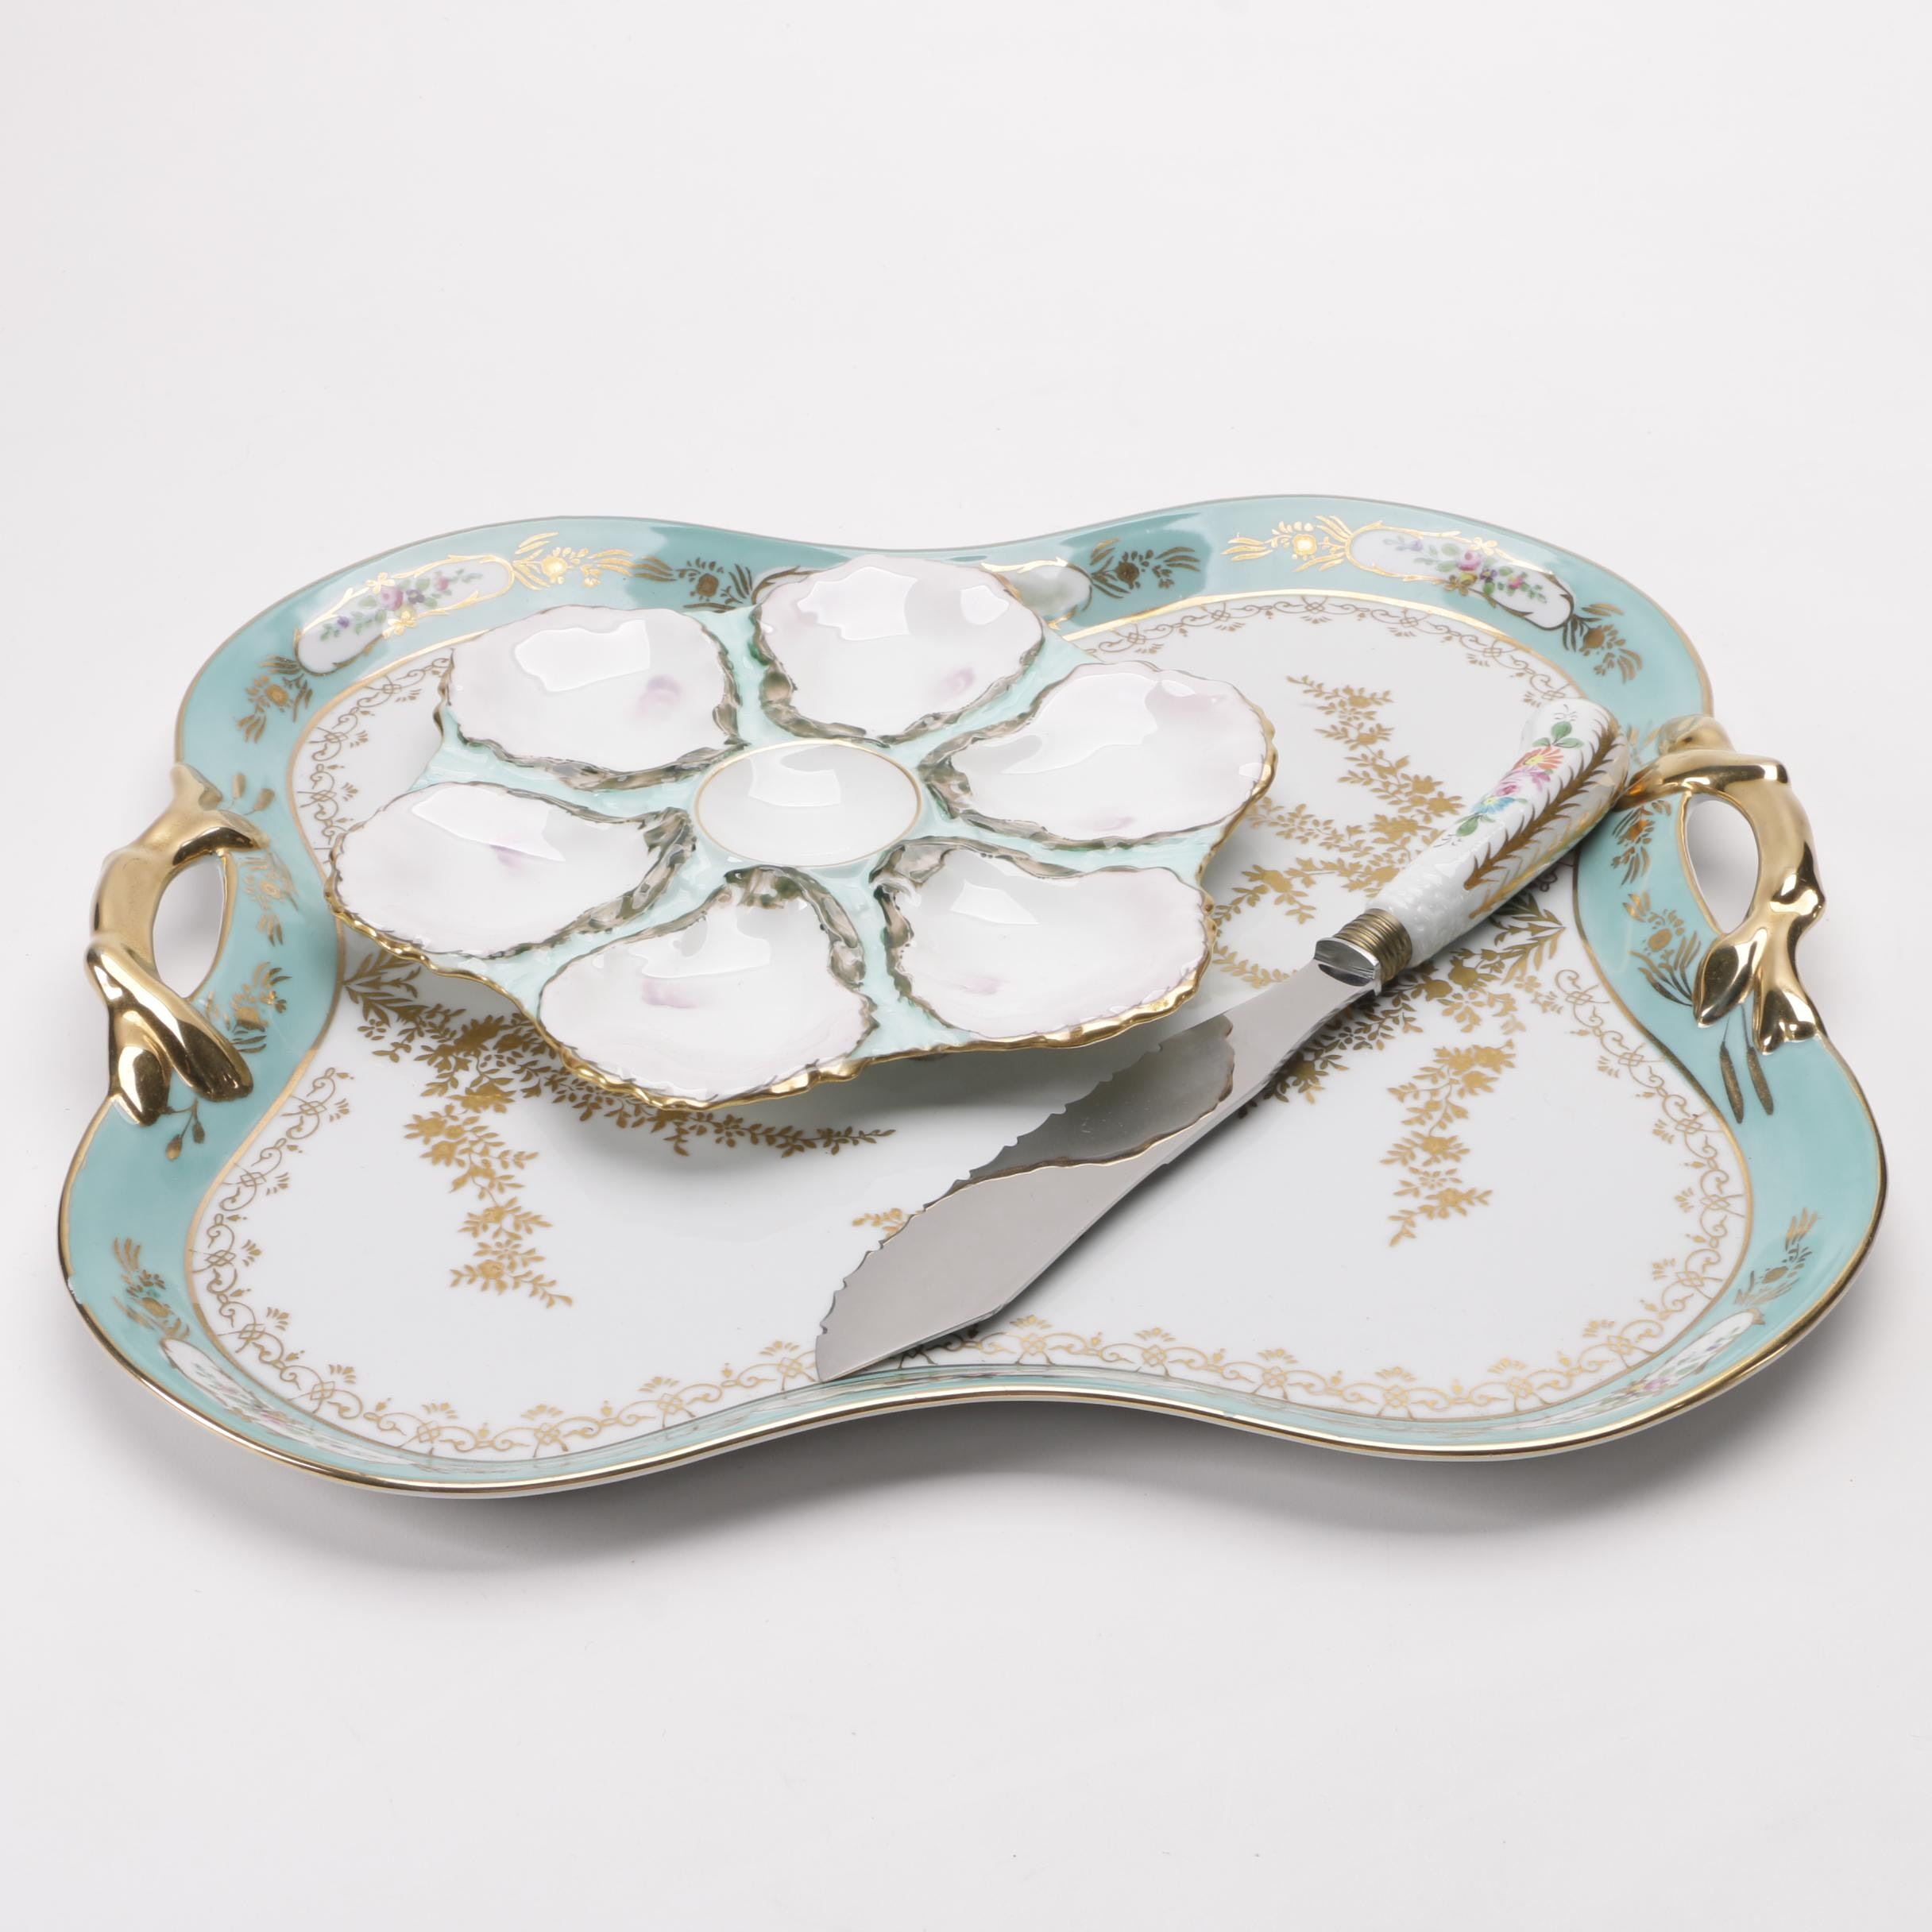 Cake Knife and Serving Tray with Haviland Oyster Plate, 1876-86